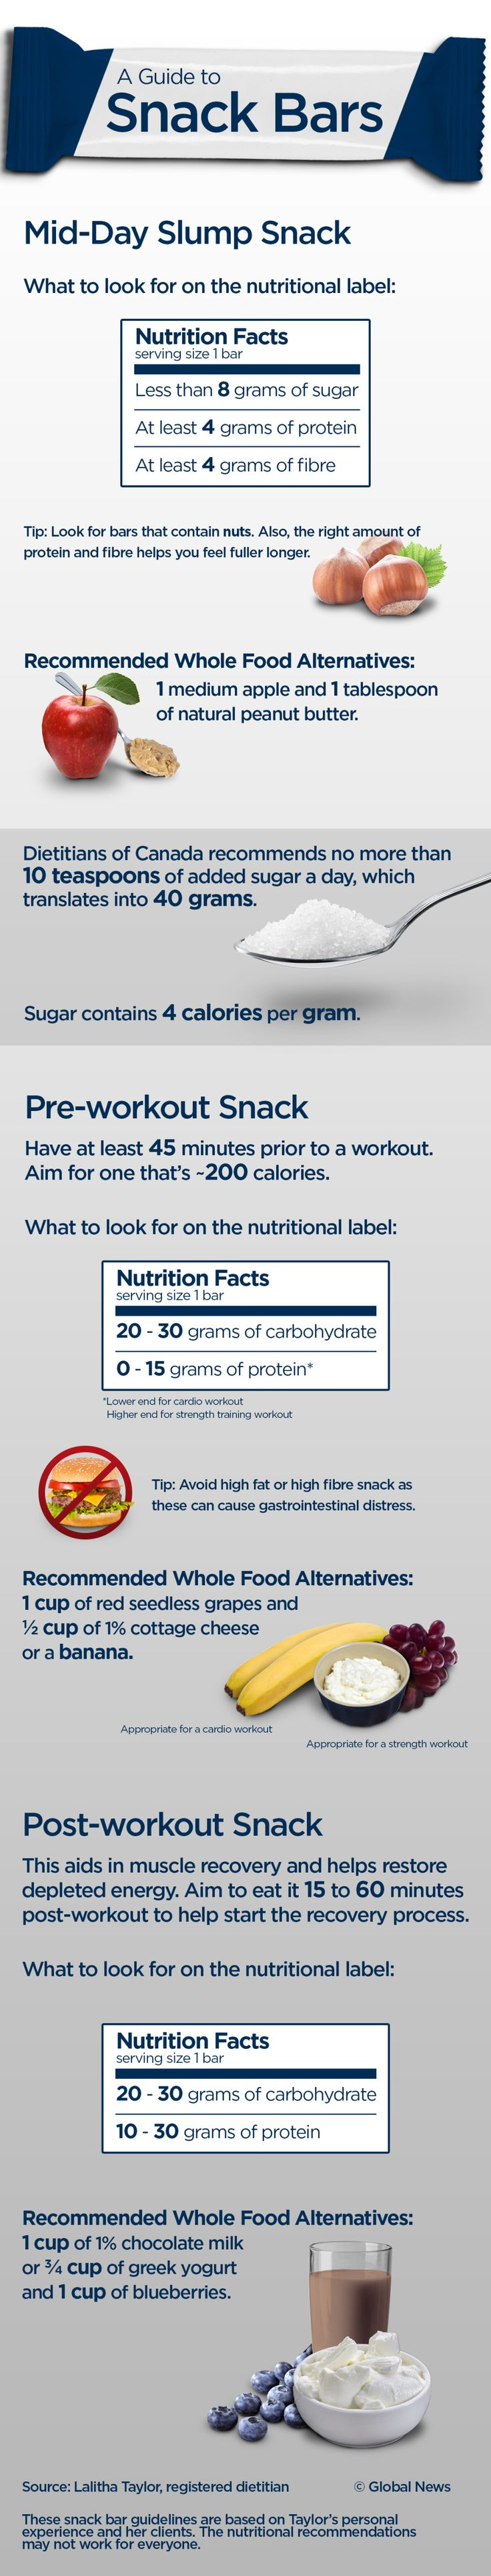 The skinny on snack bars: What to look for on the nutrition label – National